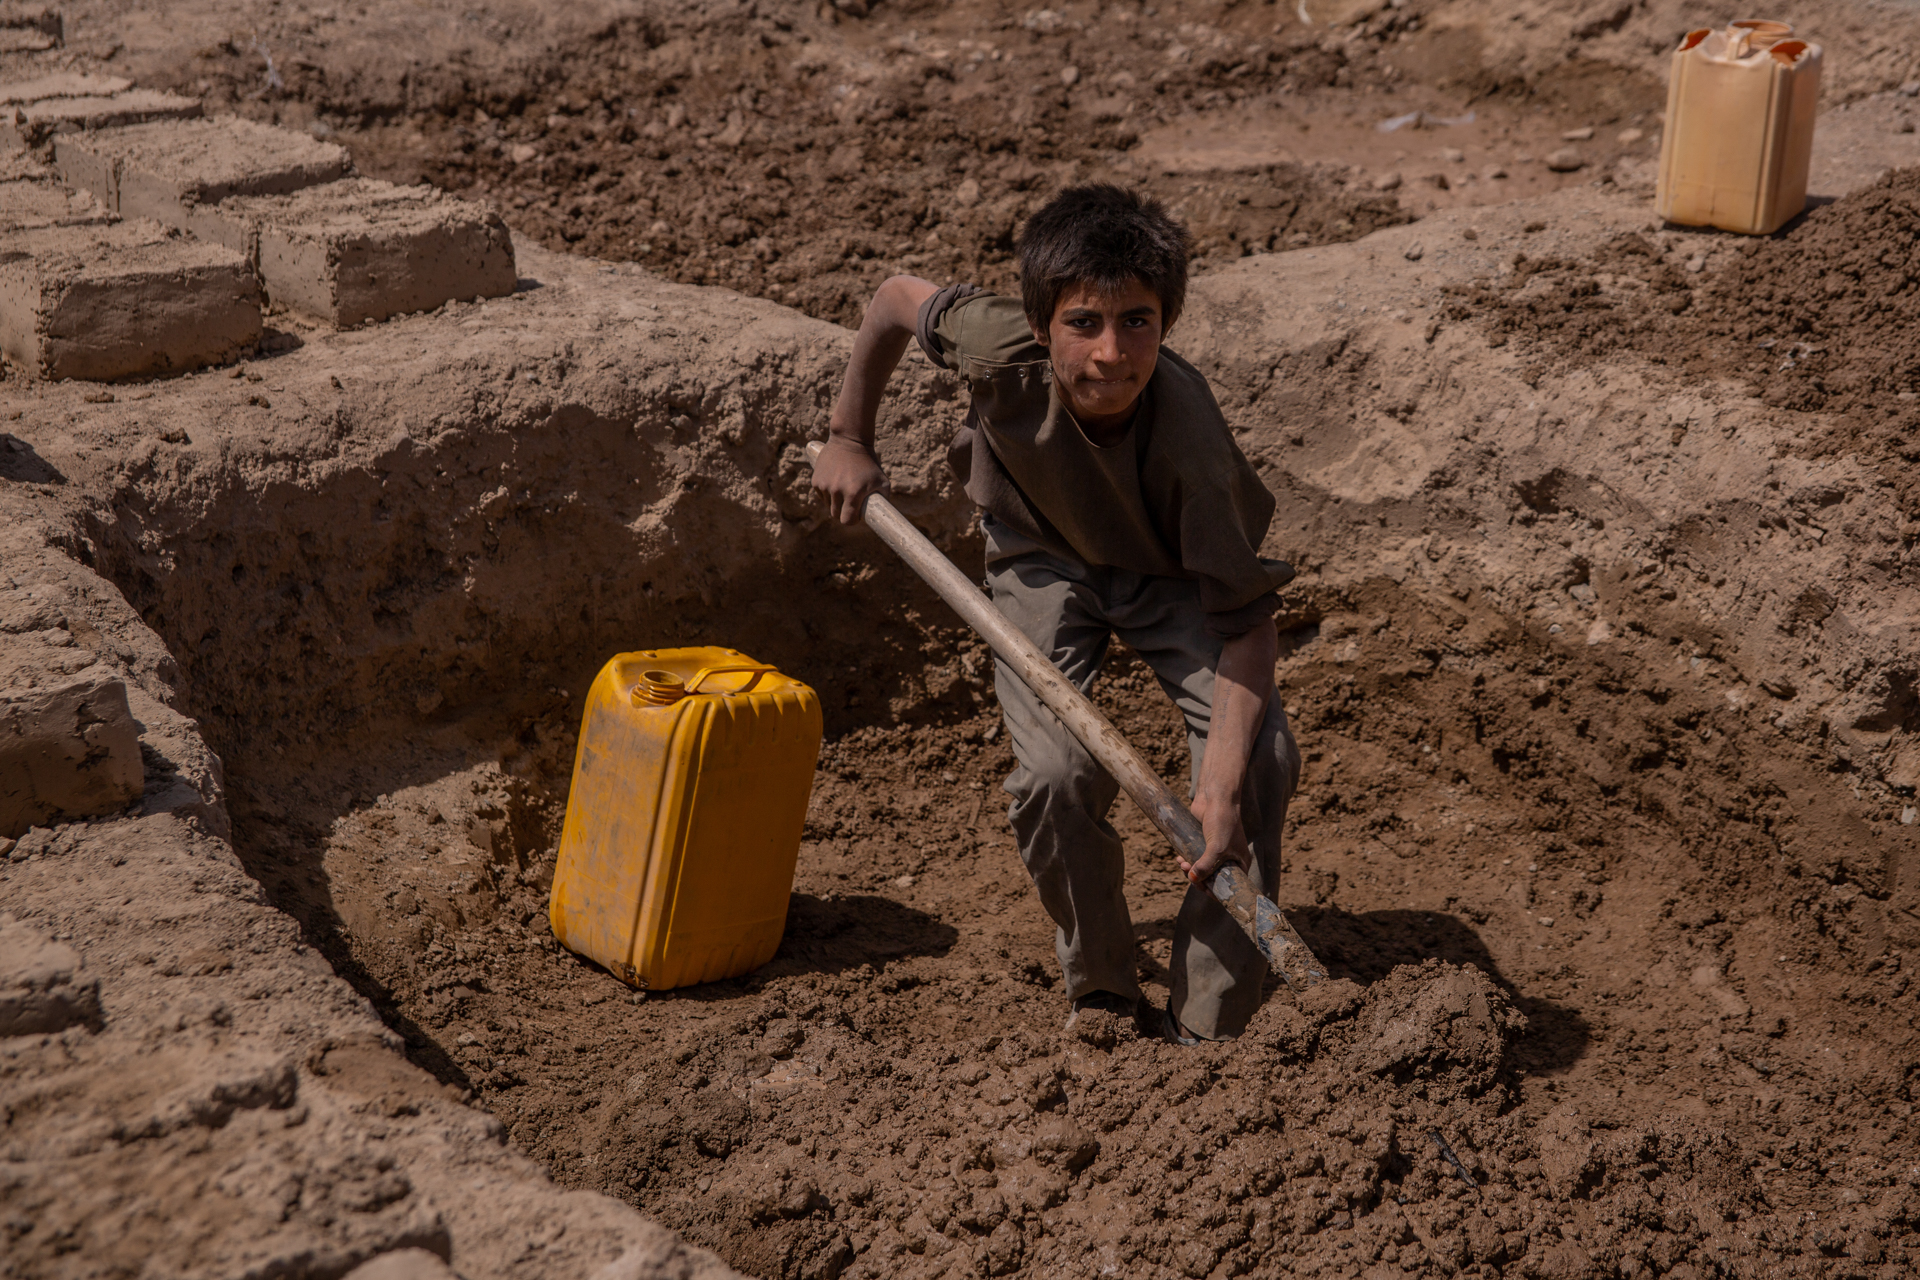 A young person shovels mud for a structure